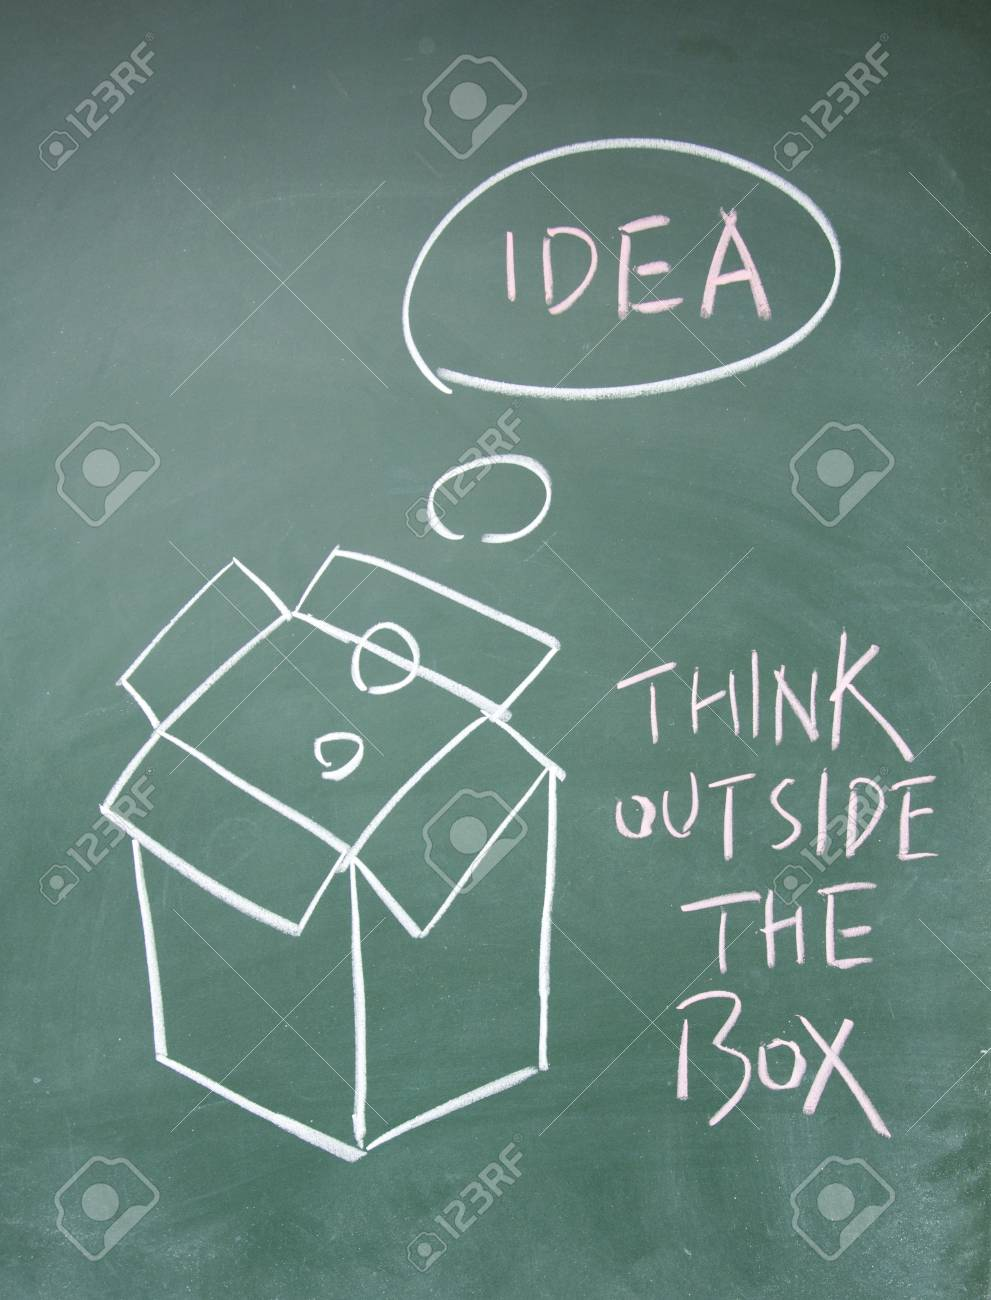 think outside the box symbol Stock Photo - 13833844